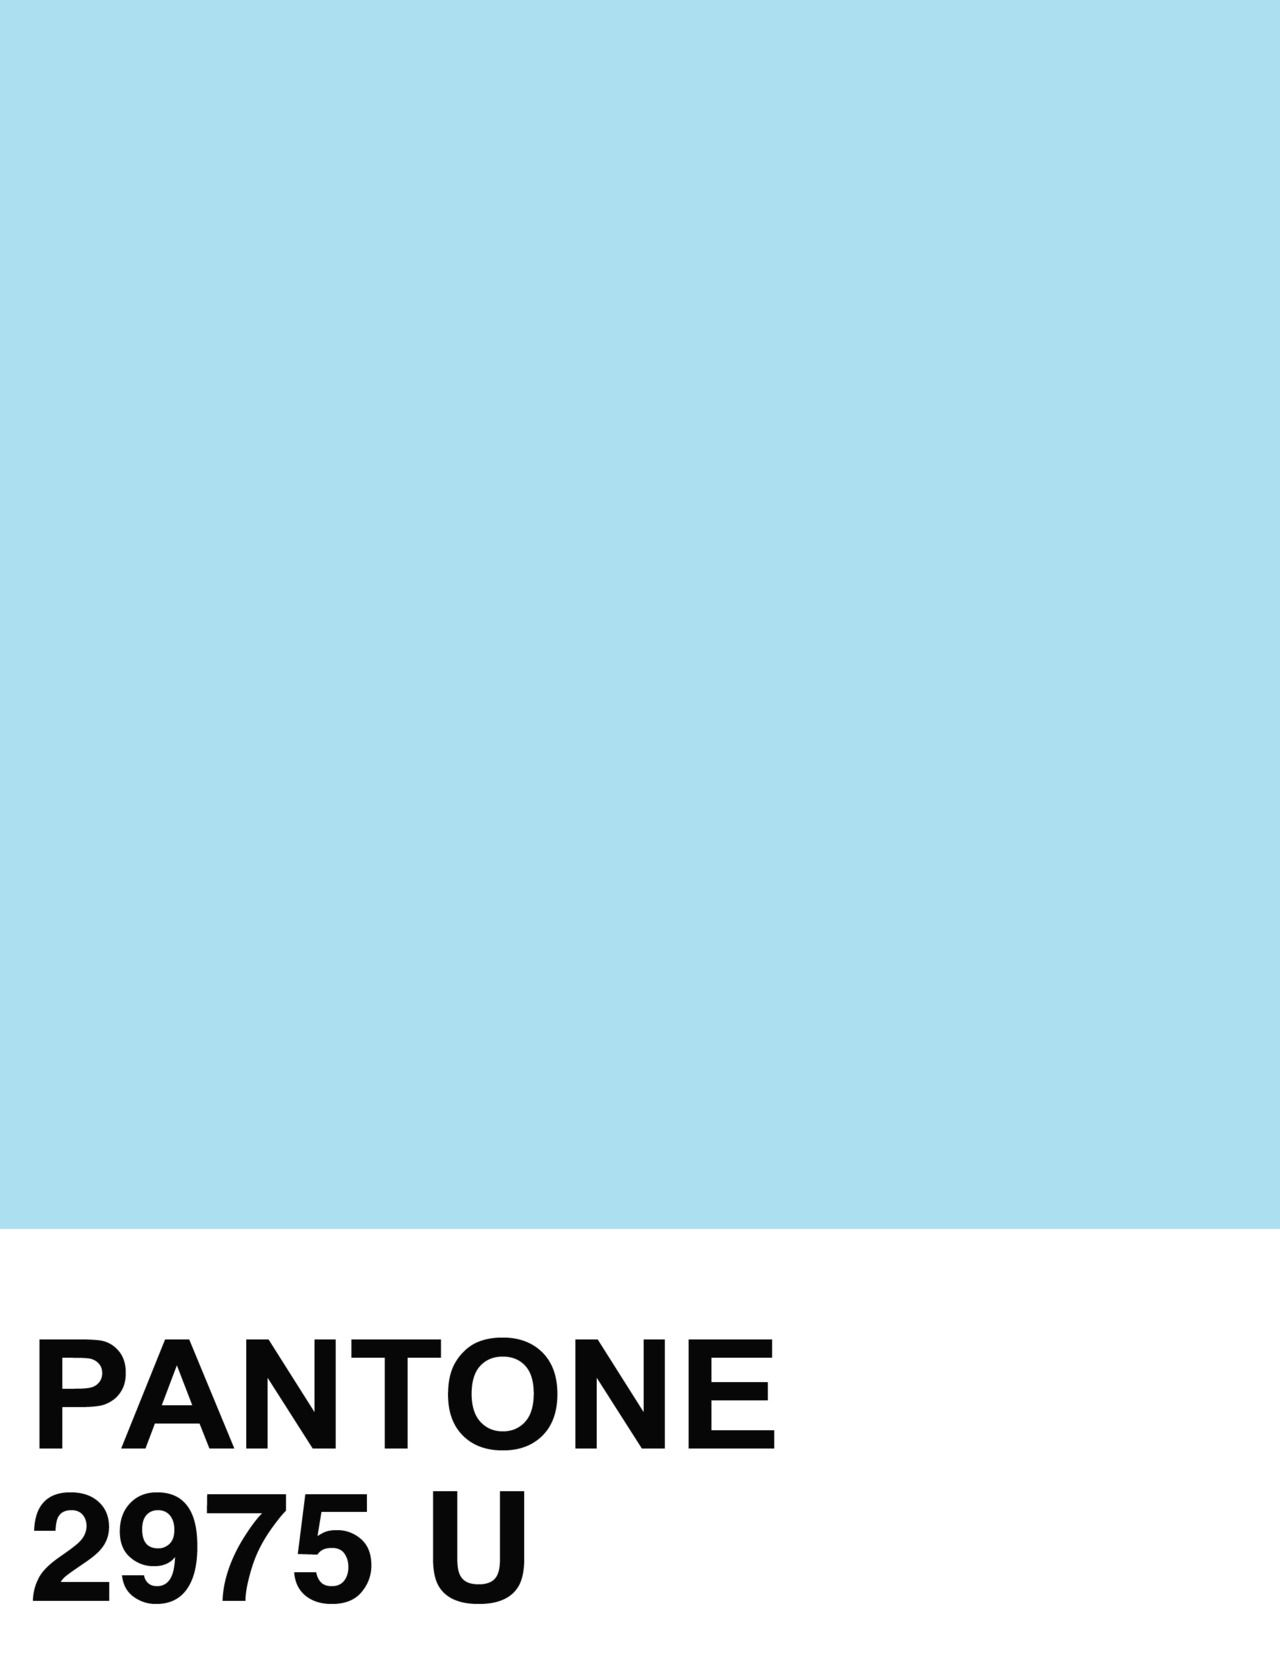 Color 2014 freesia on pinterest pantone yellow and pantone colours - Pantone Solid Uncoated Photo